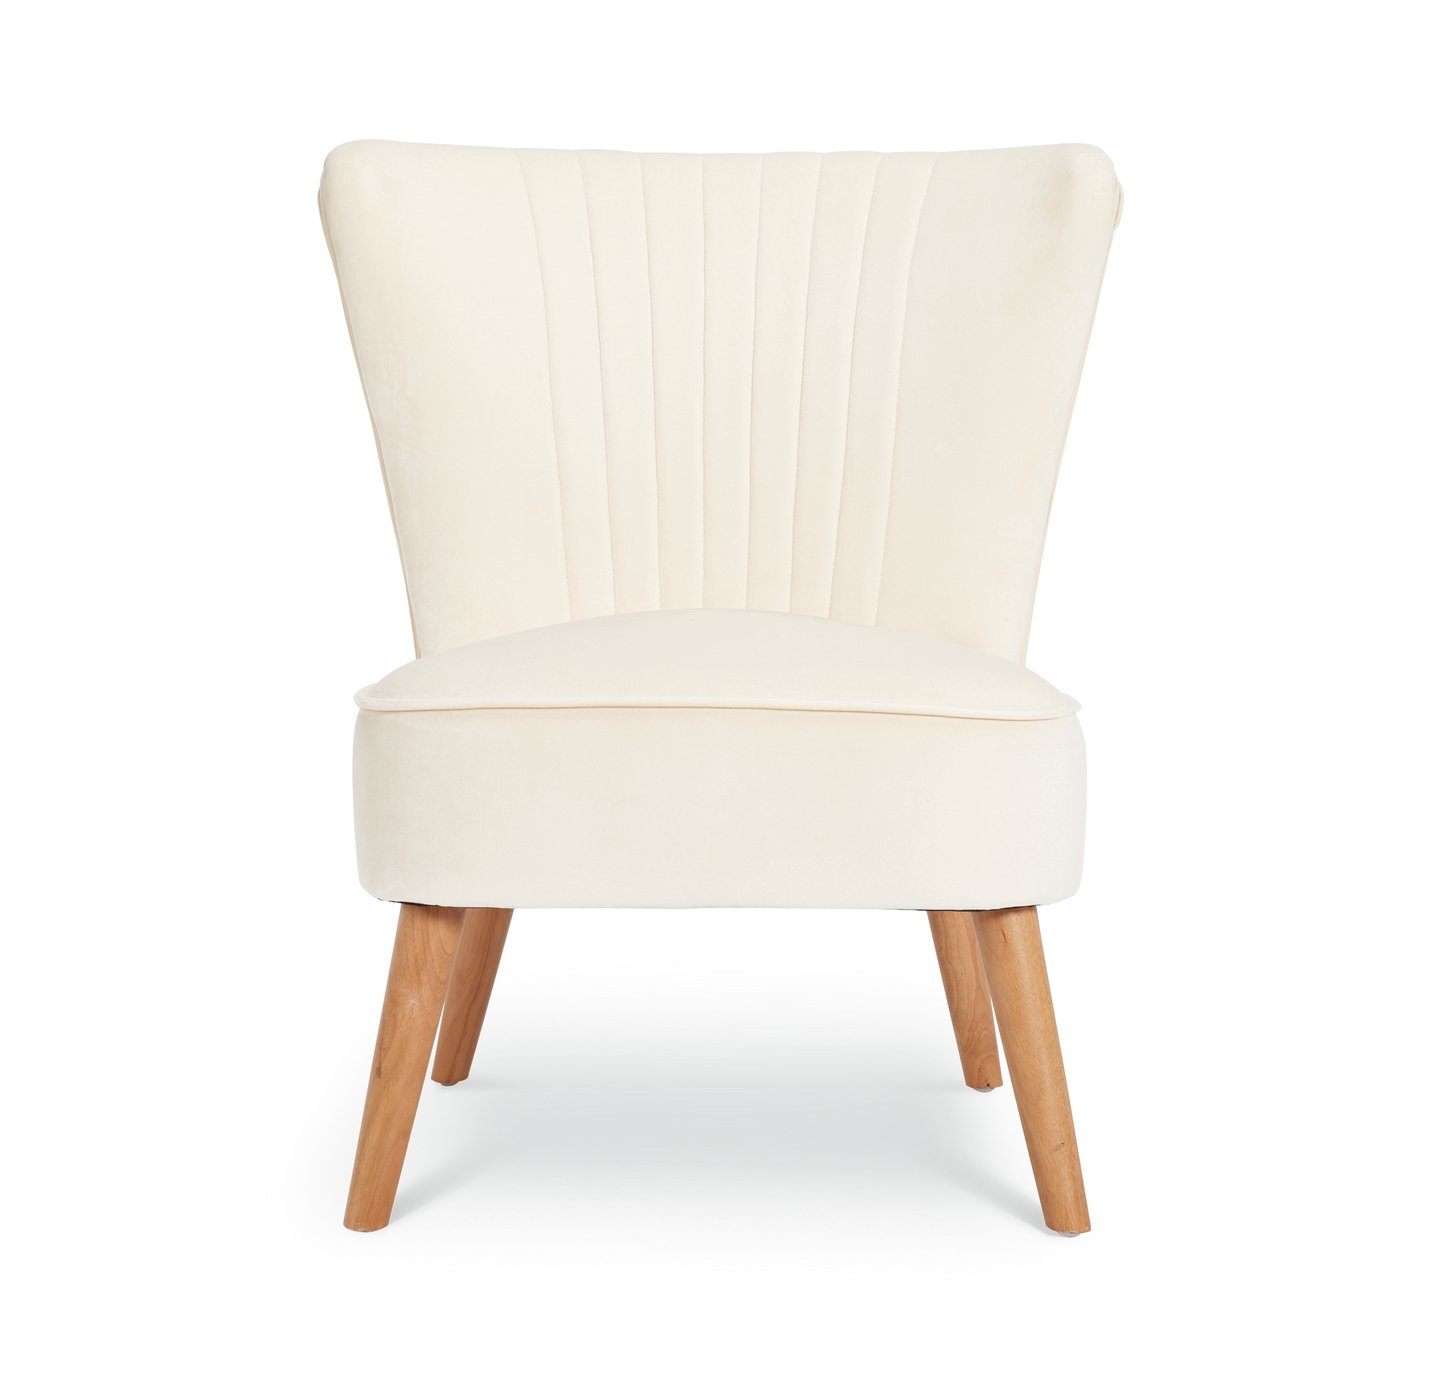 Argos Home Alana Velvet Shell Back Accent Chair - Natural